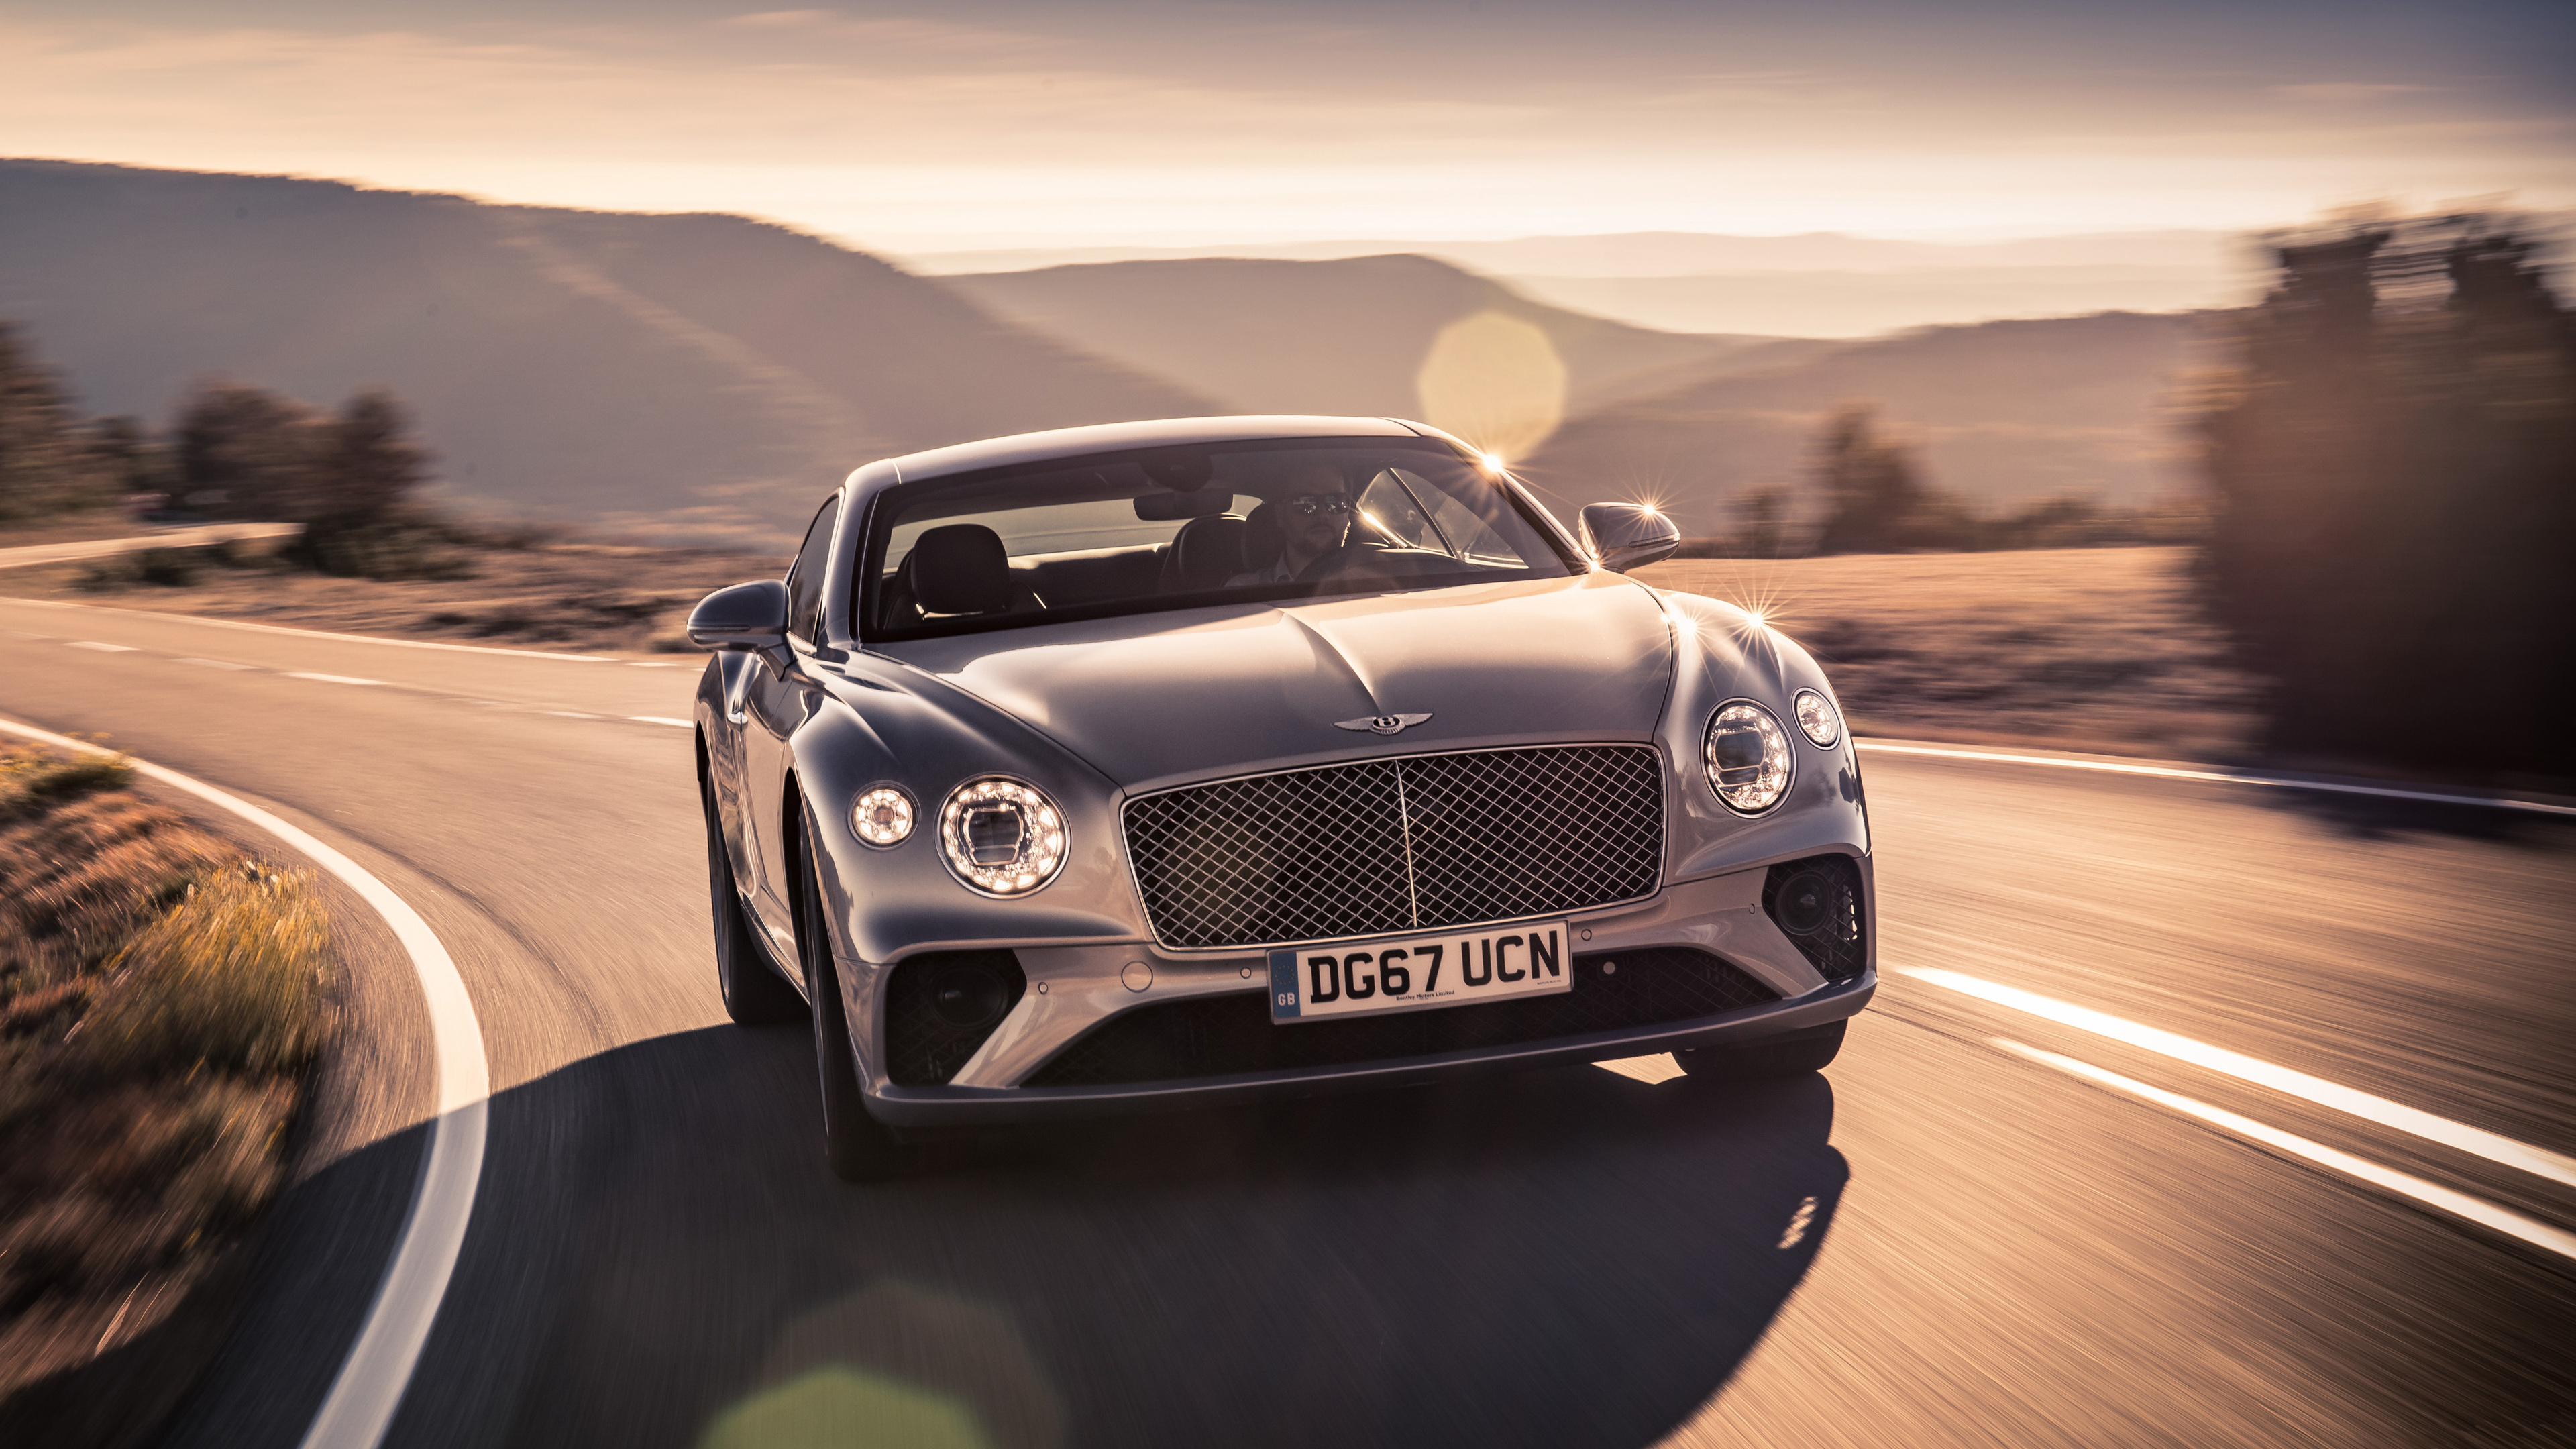 bentley continental gt 4k 2018 1539109948 - Bentley Continental GT 4k 2018 - hd-wallpapers, cars wallpapers, bentley wallpapers, bentley continental gt wallpapers, 4k-wallpapers, 2018 cars wallpapers